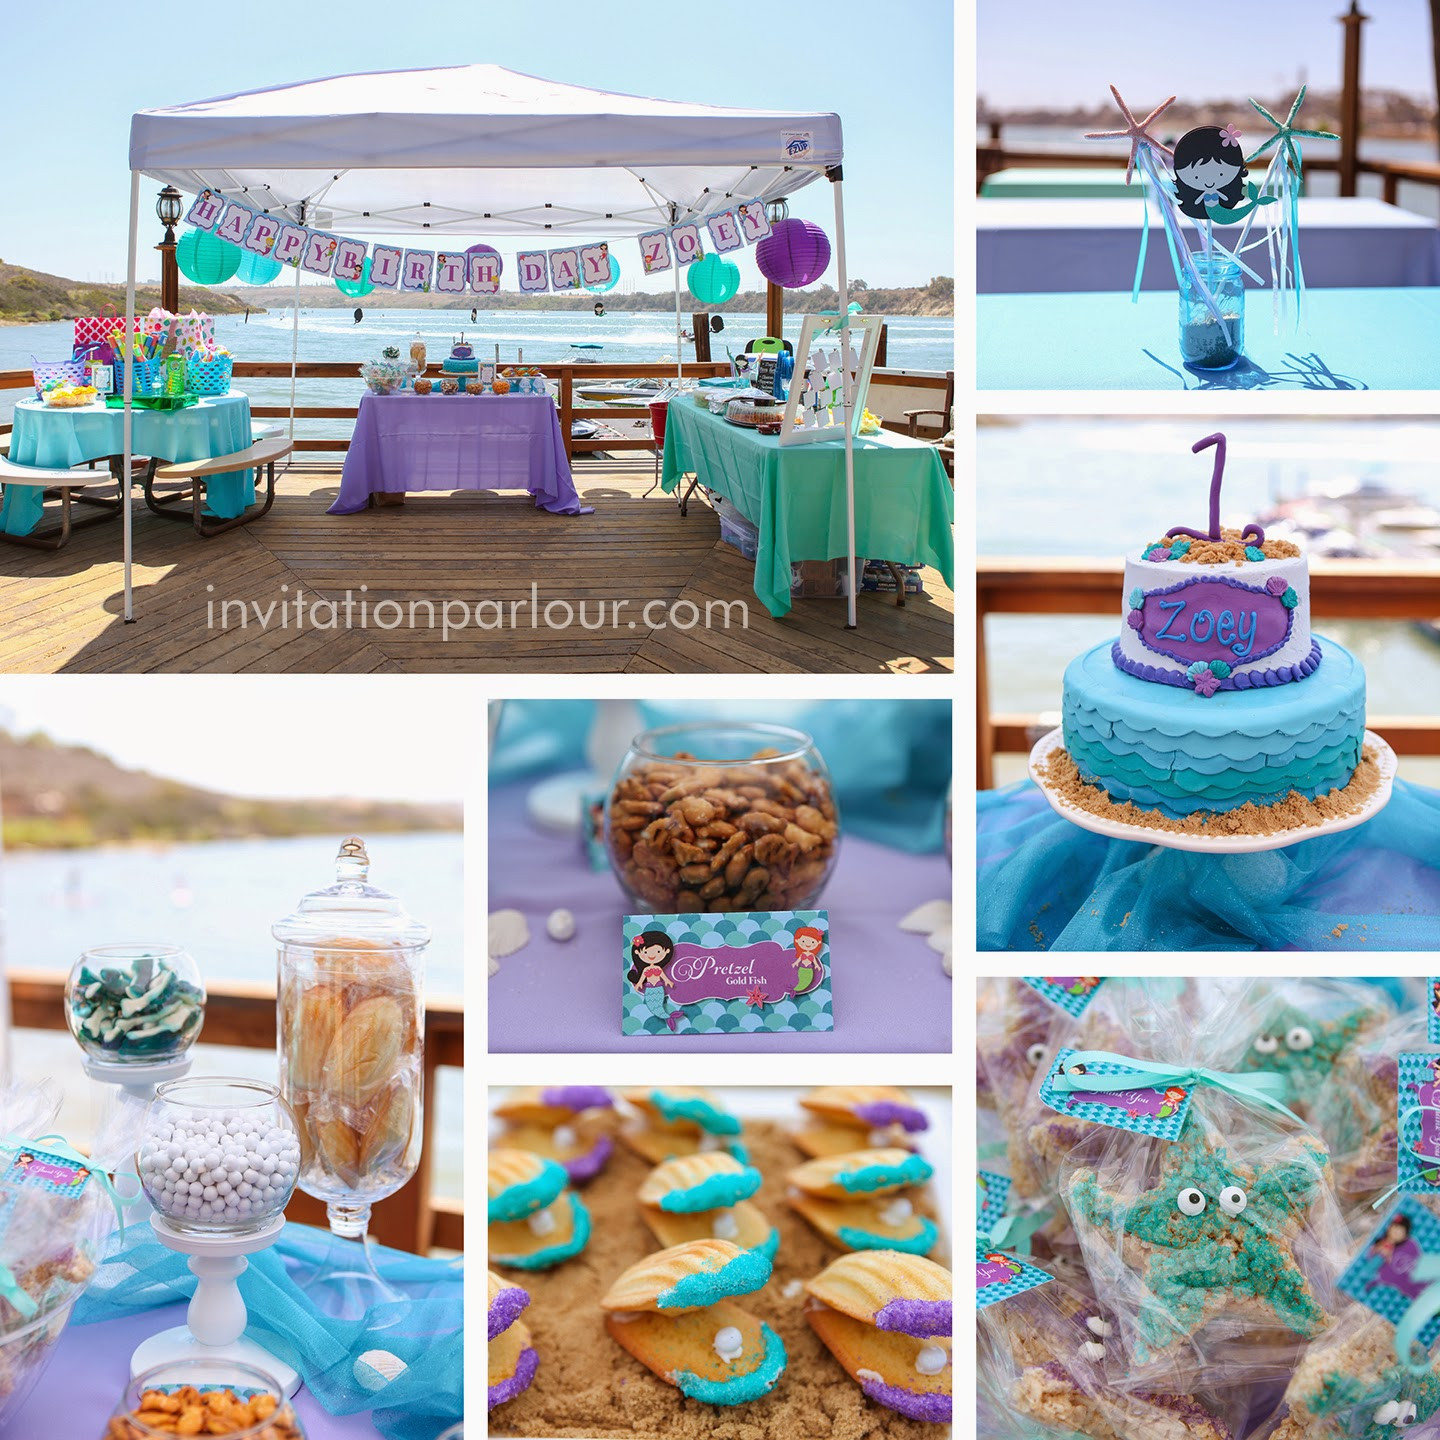 Best ideas about Under The Sea Birthday Party . Save or Pin Invitation Parlour Mermaid Under the Sea Birthday Party Now.